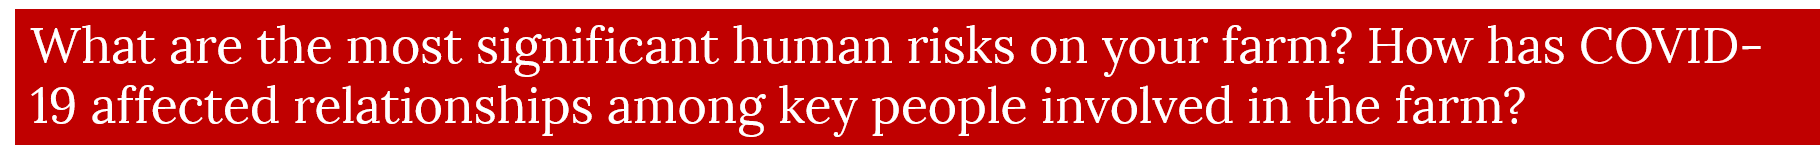 What are the most significant human risks on your farm? How has COVID-19 affected relationships among key people involved in the farm?